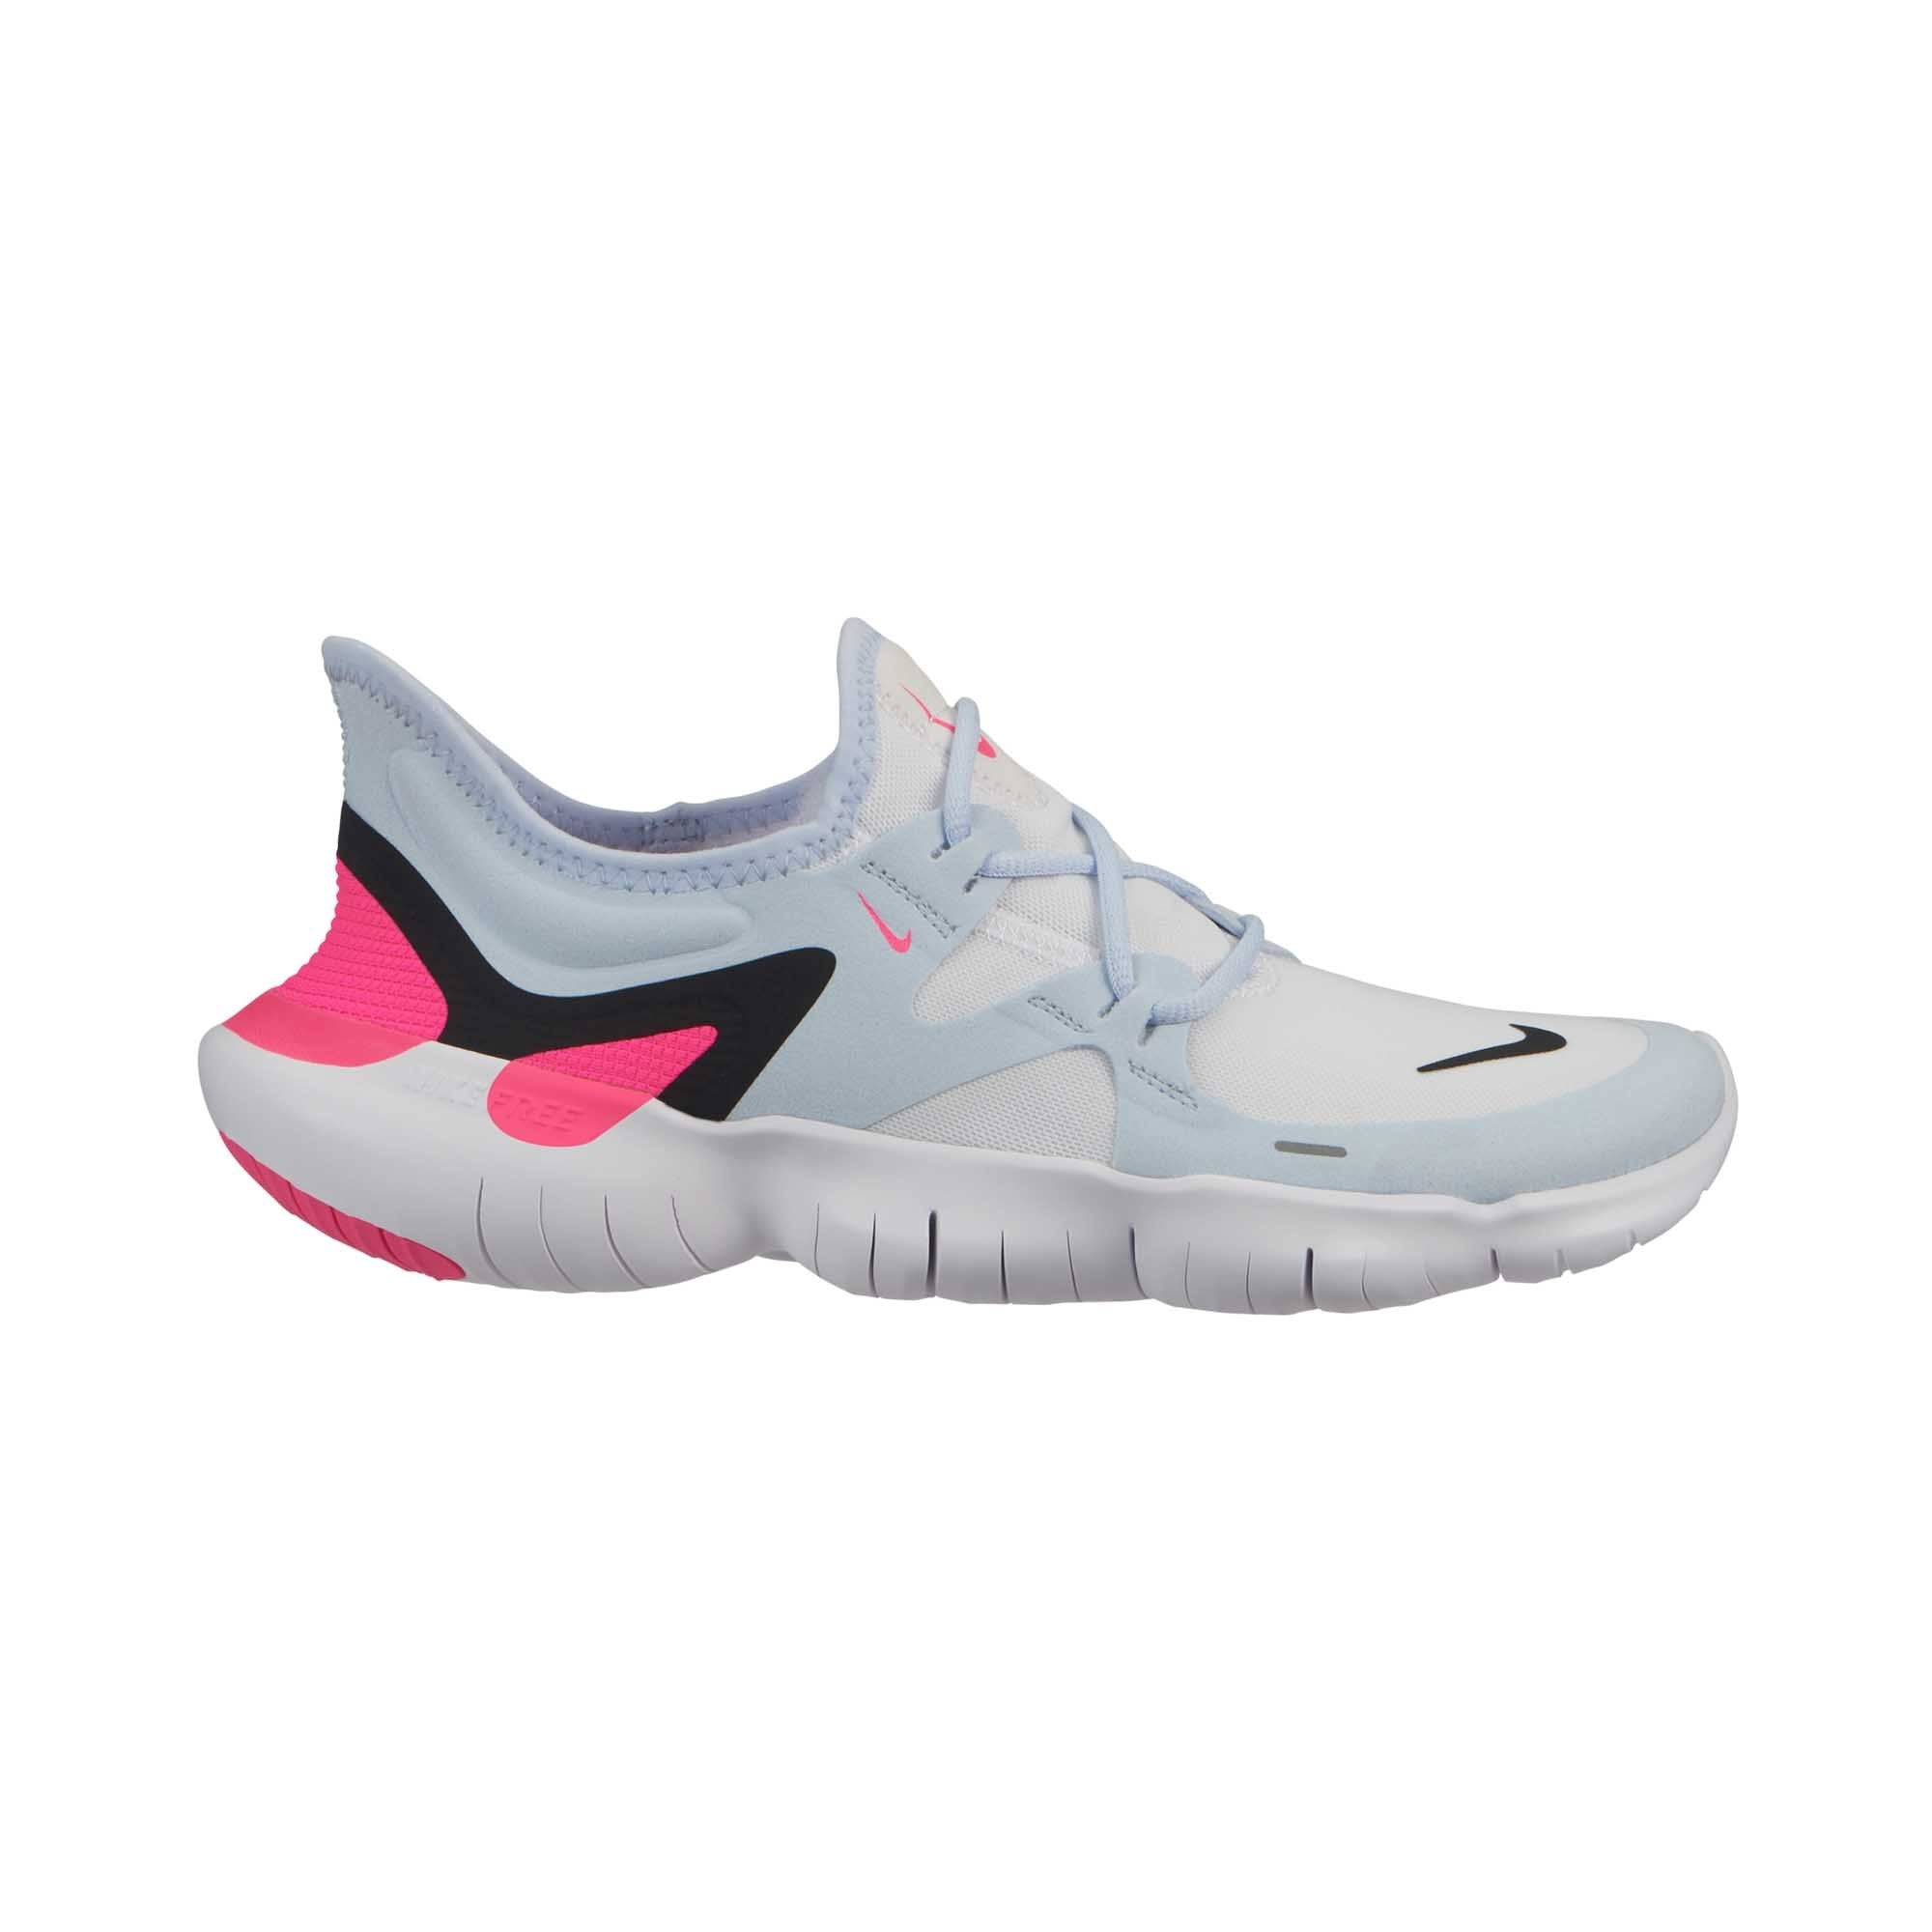 quality design 9e938 38188 Buy Nike Women Free Run 5.0 Running Shoes Online in Singapore | Royal  Sporting House